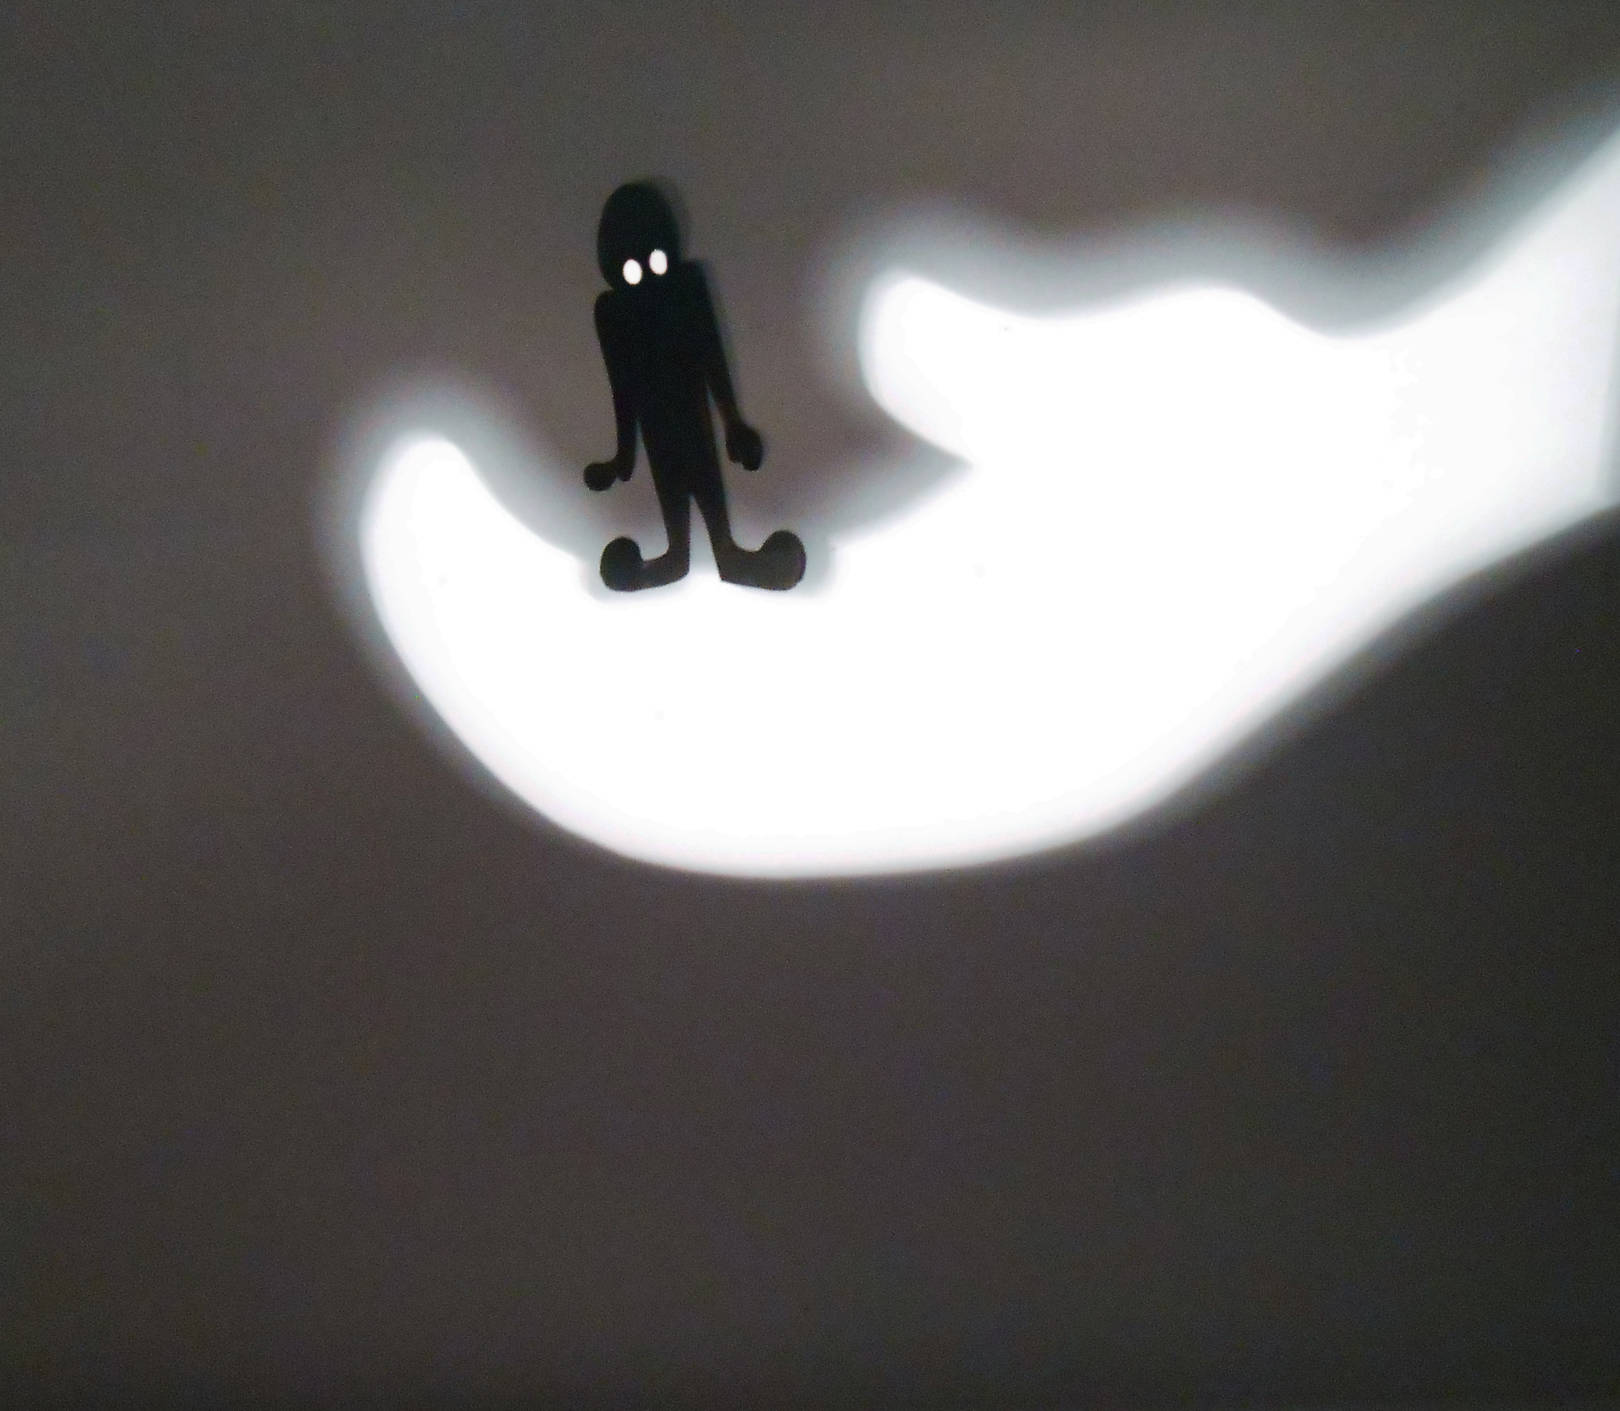 The play of light with shadow.